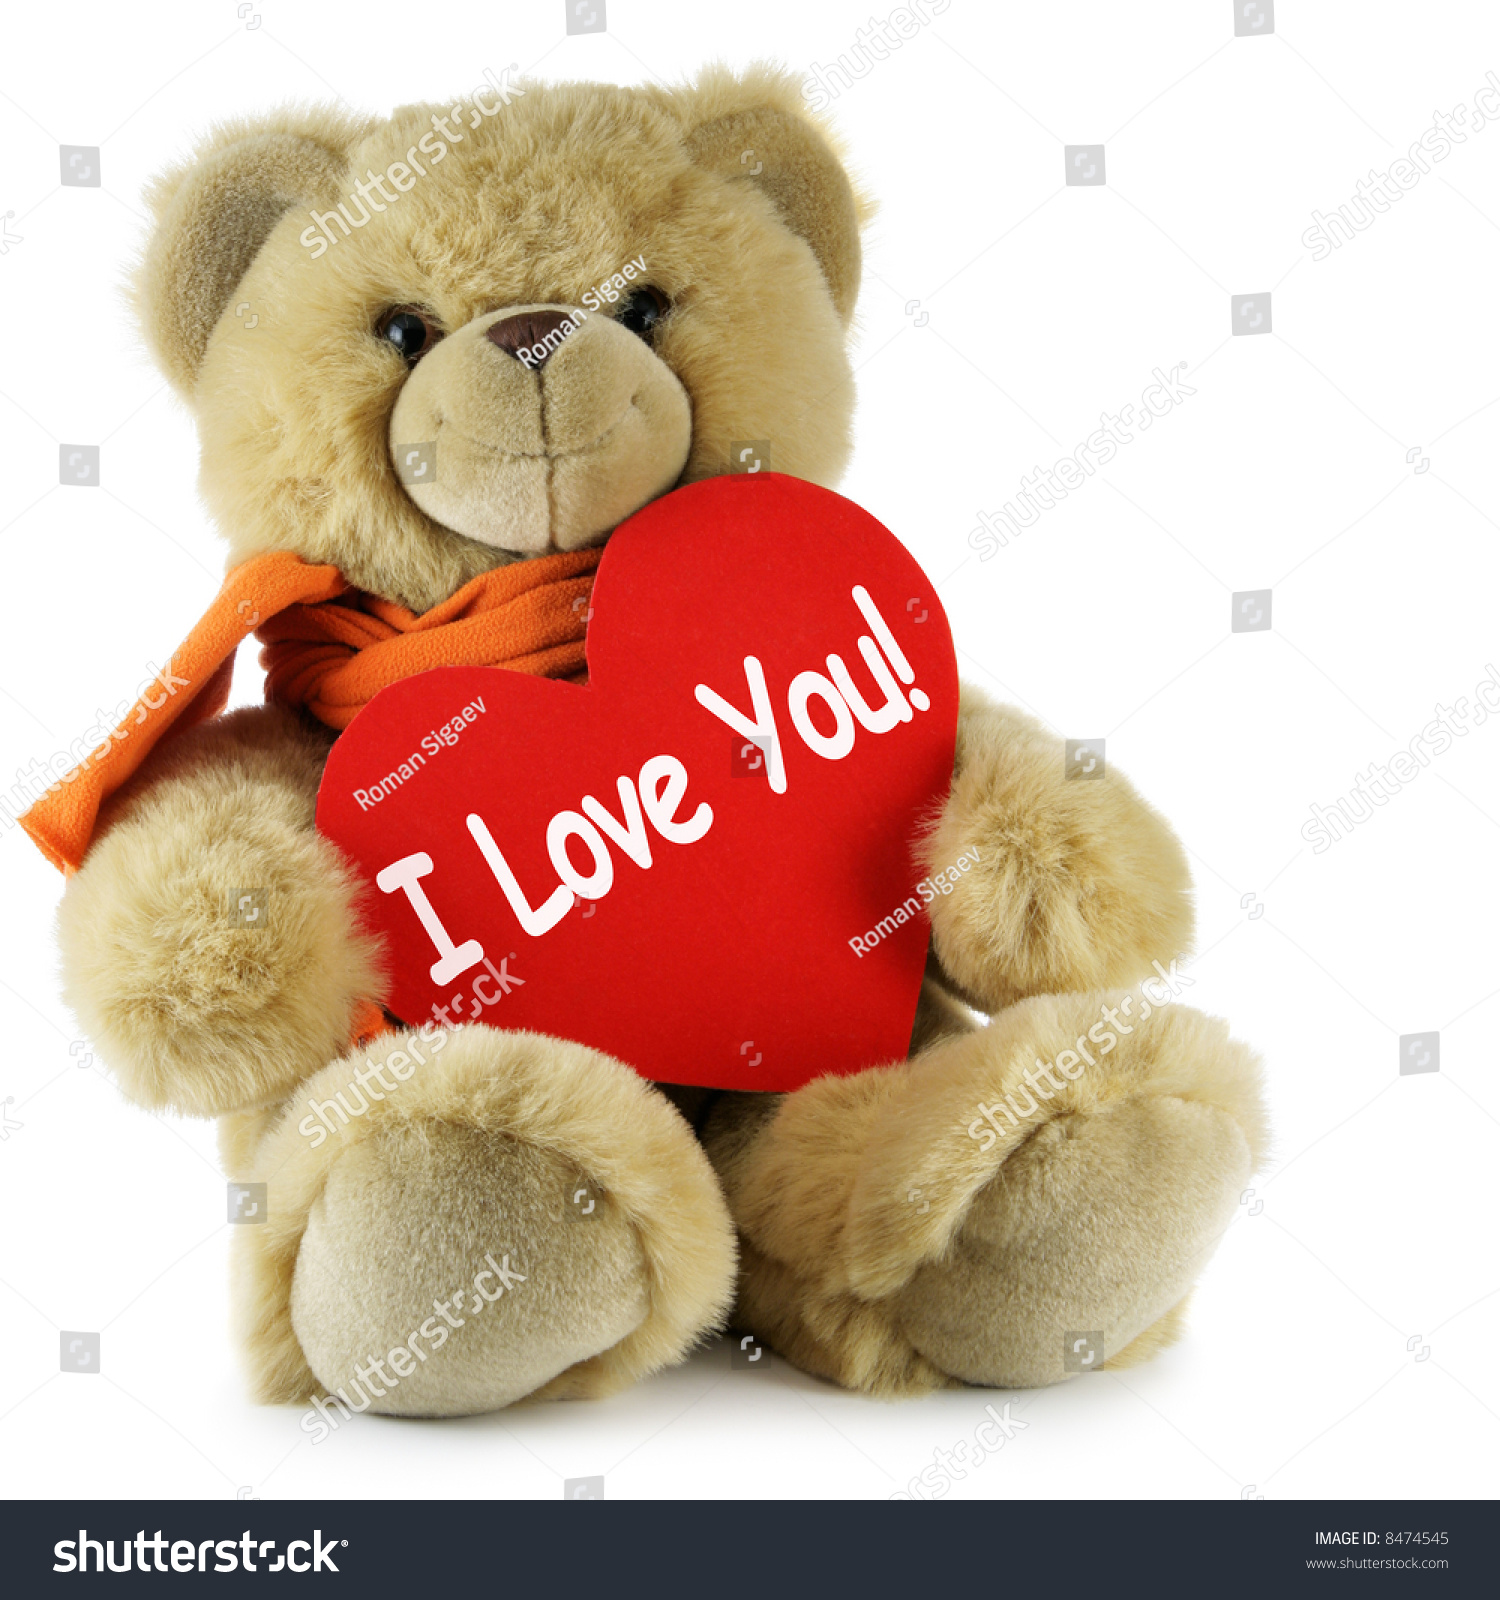 teddy bear big red heart text stock photo & image (royalty-free